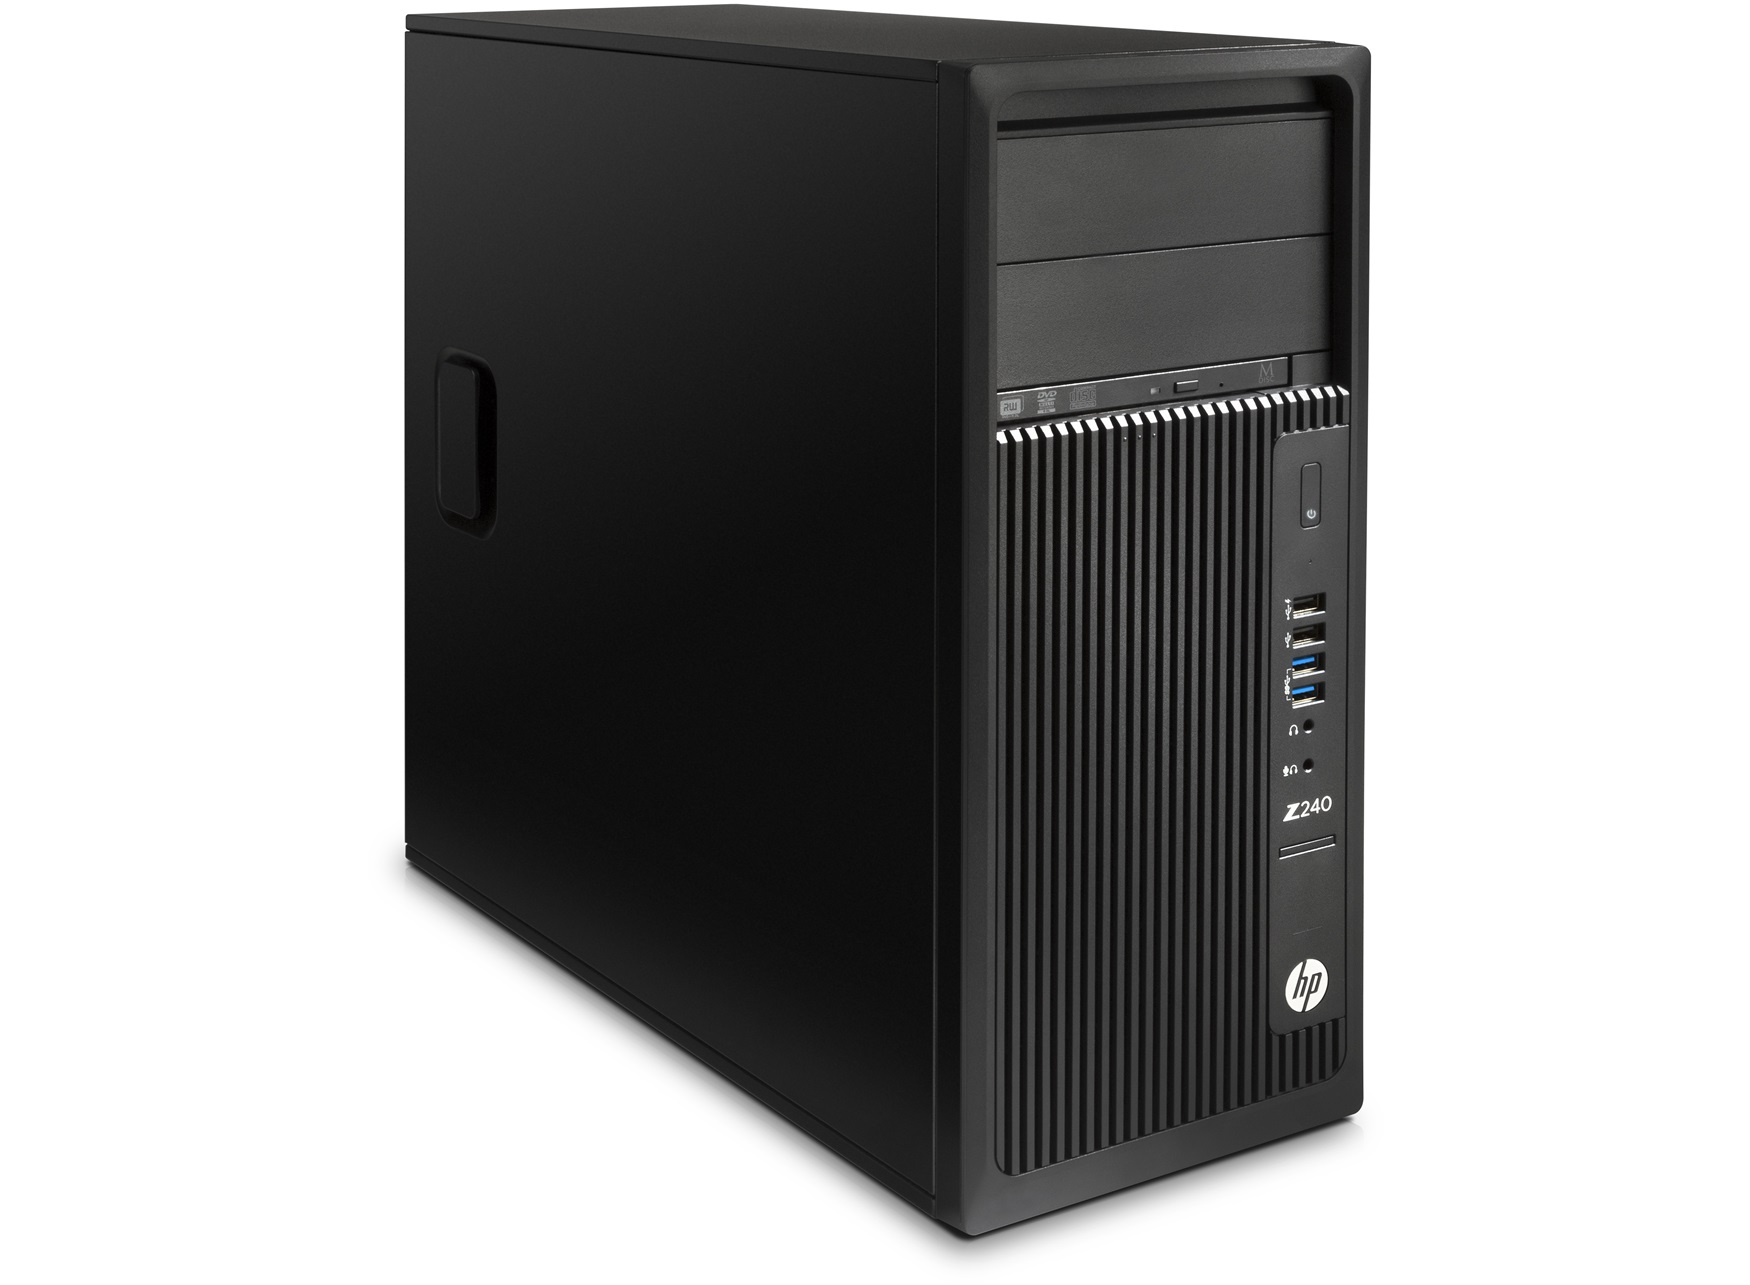 HP Z240 TWR Intel i7-6700 3.4GHz/16GB DDR4-2133 nECC (2x8GB)/512GB SSD PCIe/Intel HD GFX 530/Win 10 Pro+Win 7 Pro